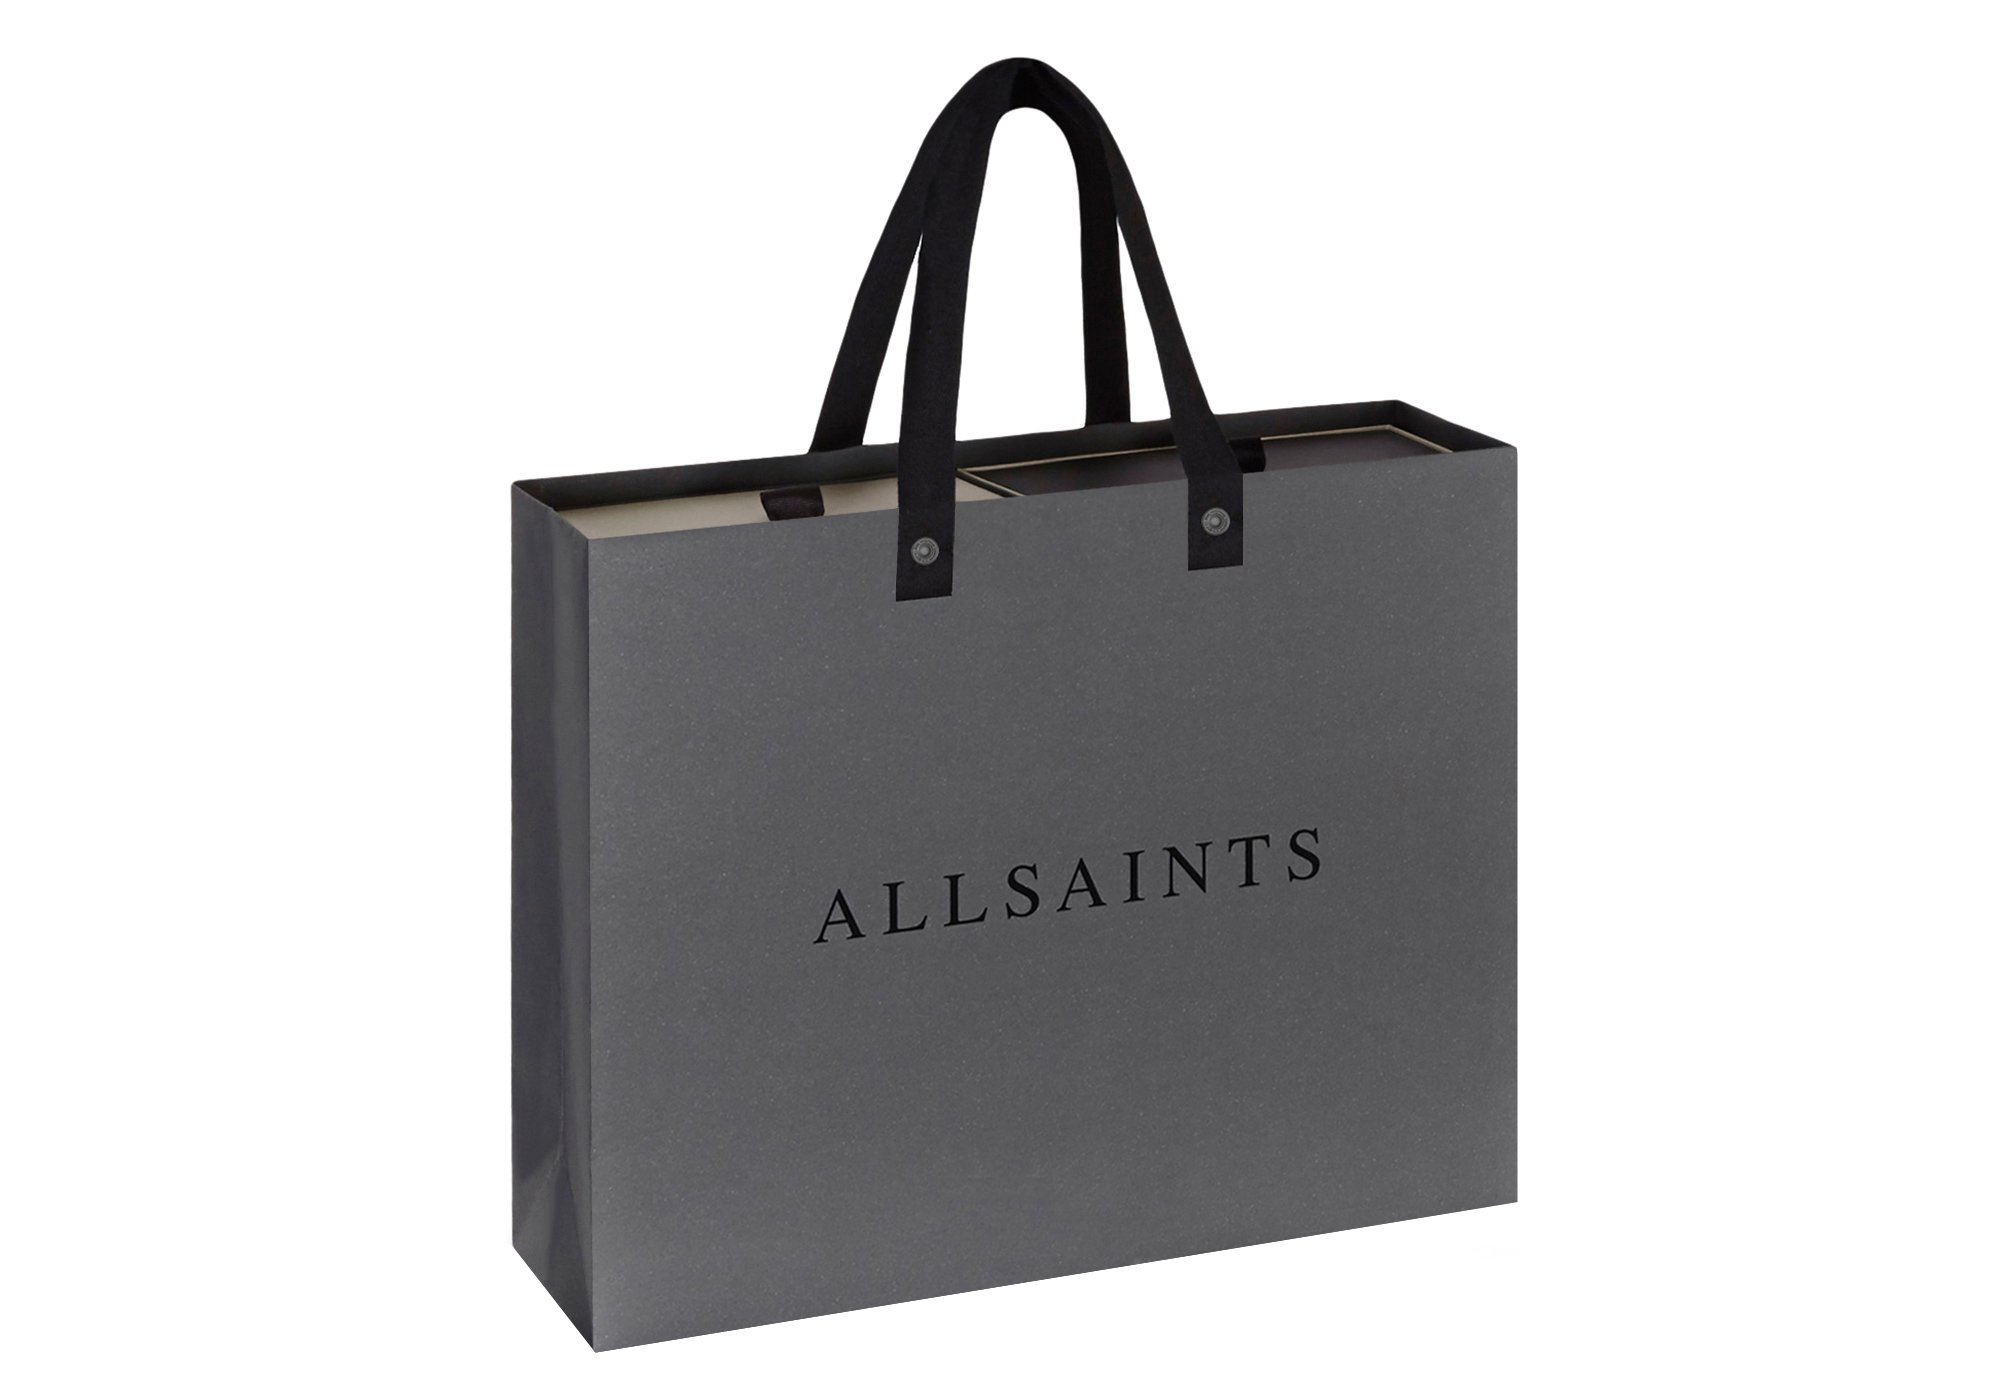 All saints Shopping bag